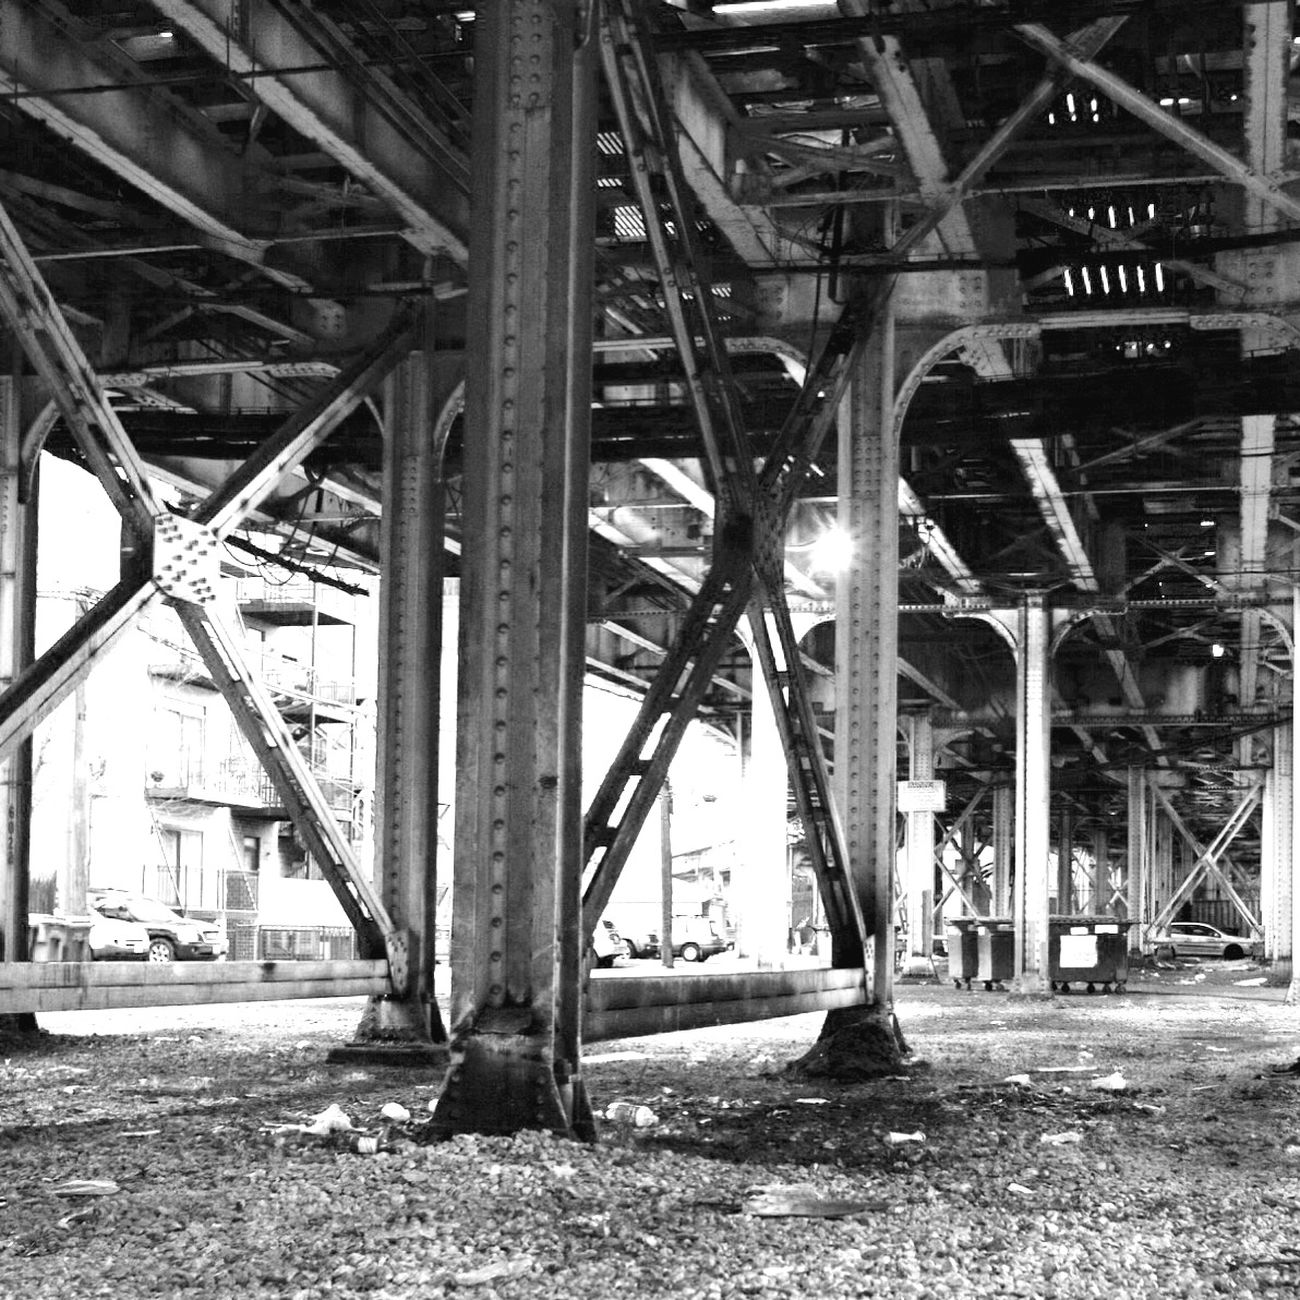 Under the El tracks. Chicago Chicago El El Tracks Train Train Tracks Blackandwhite Canon Canon6d